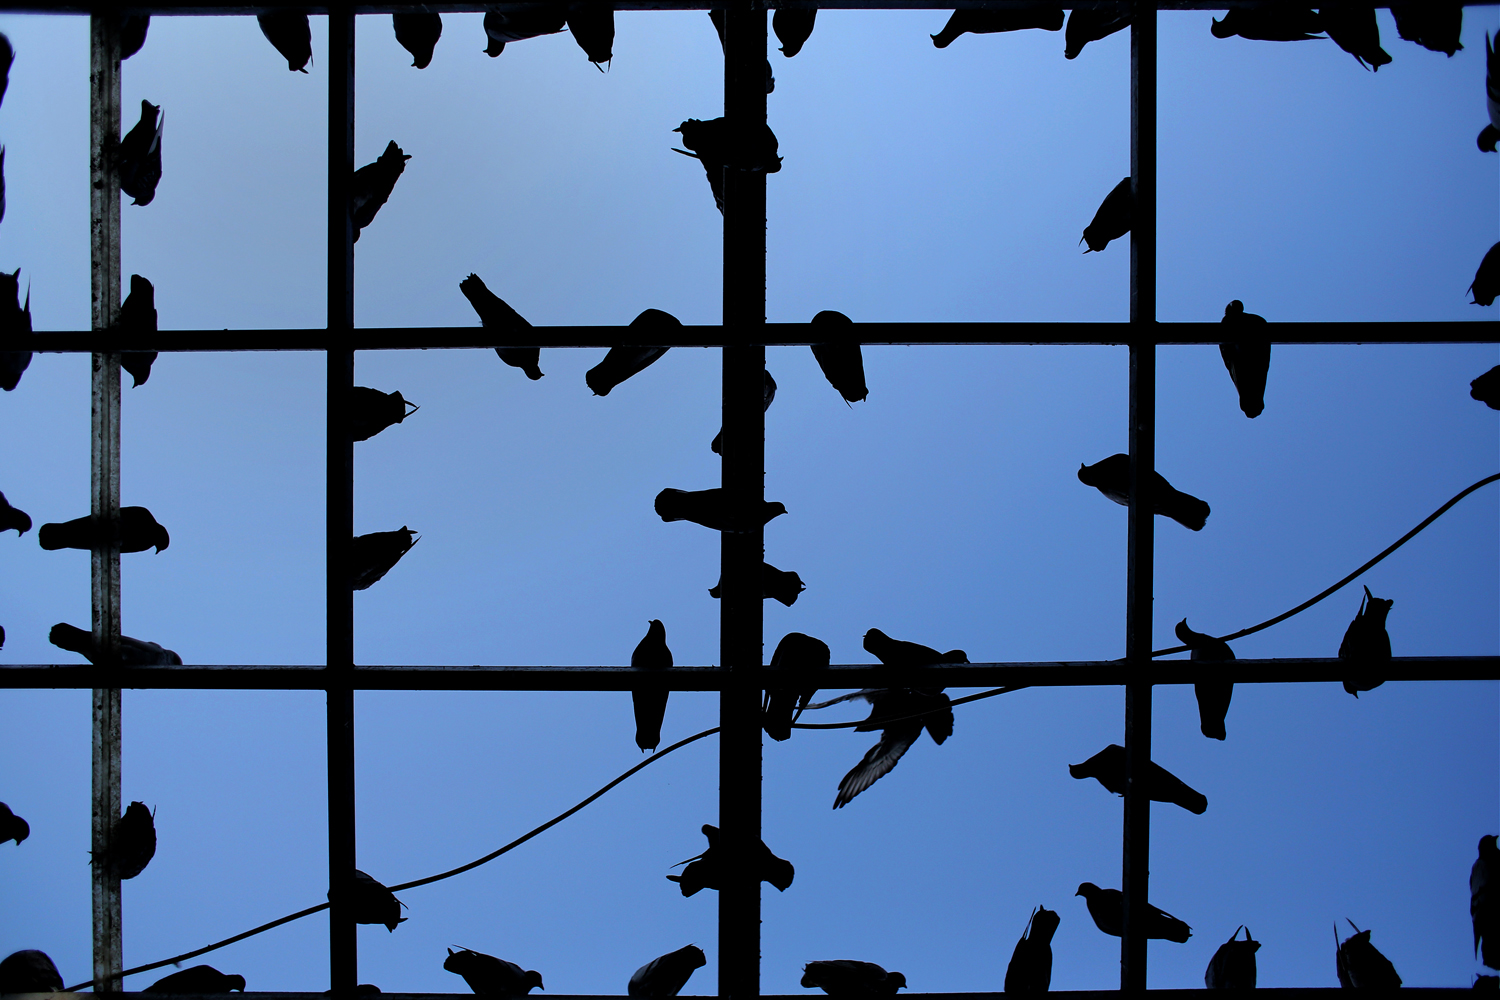 Oct. 15, 2013. Pigeons rest on a metallic structure at Kotzia square, in front of Athens' city hall.